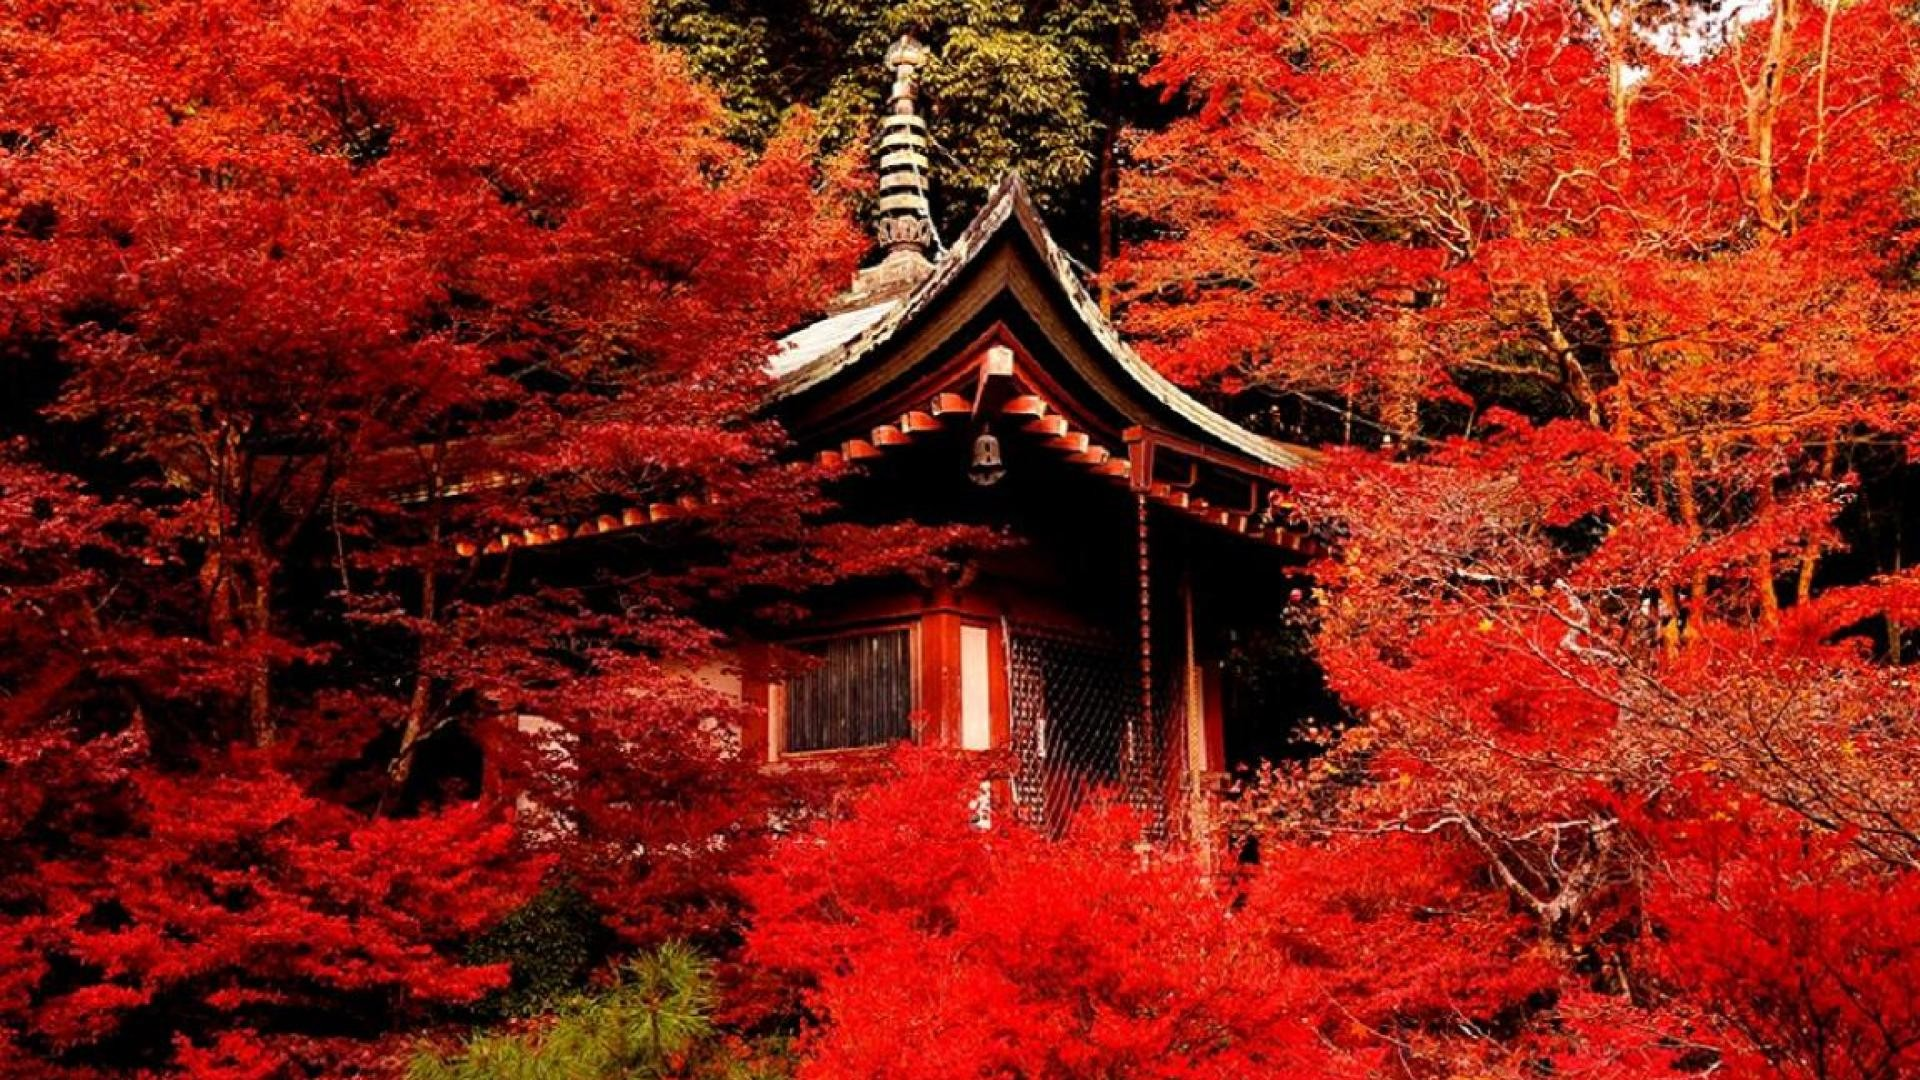 Download now full hd wallpaper kyoto autumn tea house in screen resolution  1920×1080.